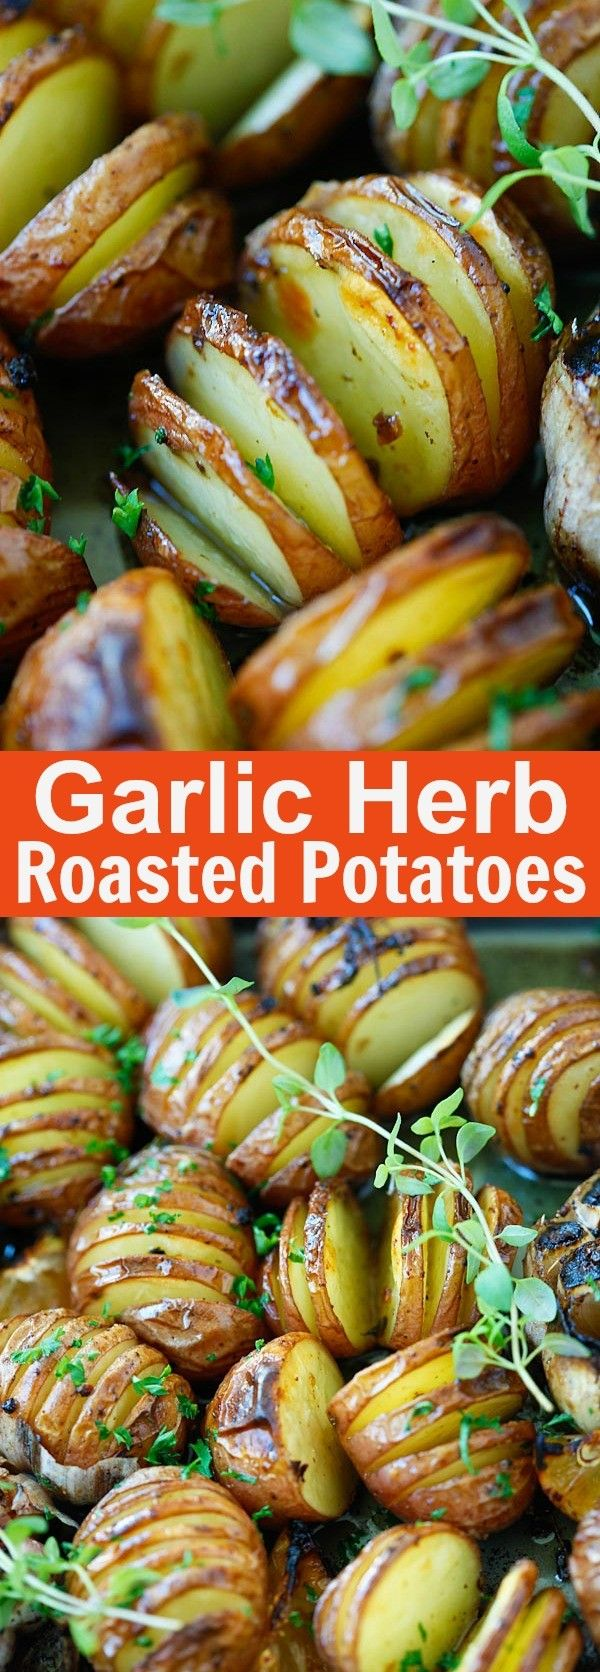 Get The Recipe Garlic Herb Roasted Potatoes @recipes_to_go